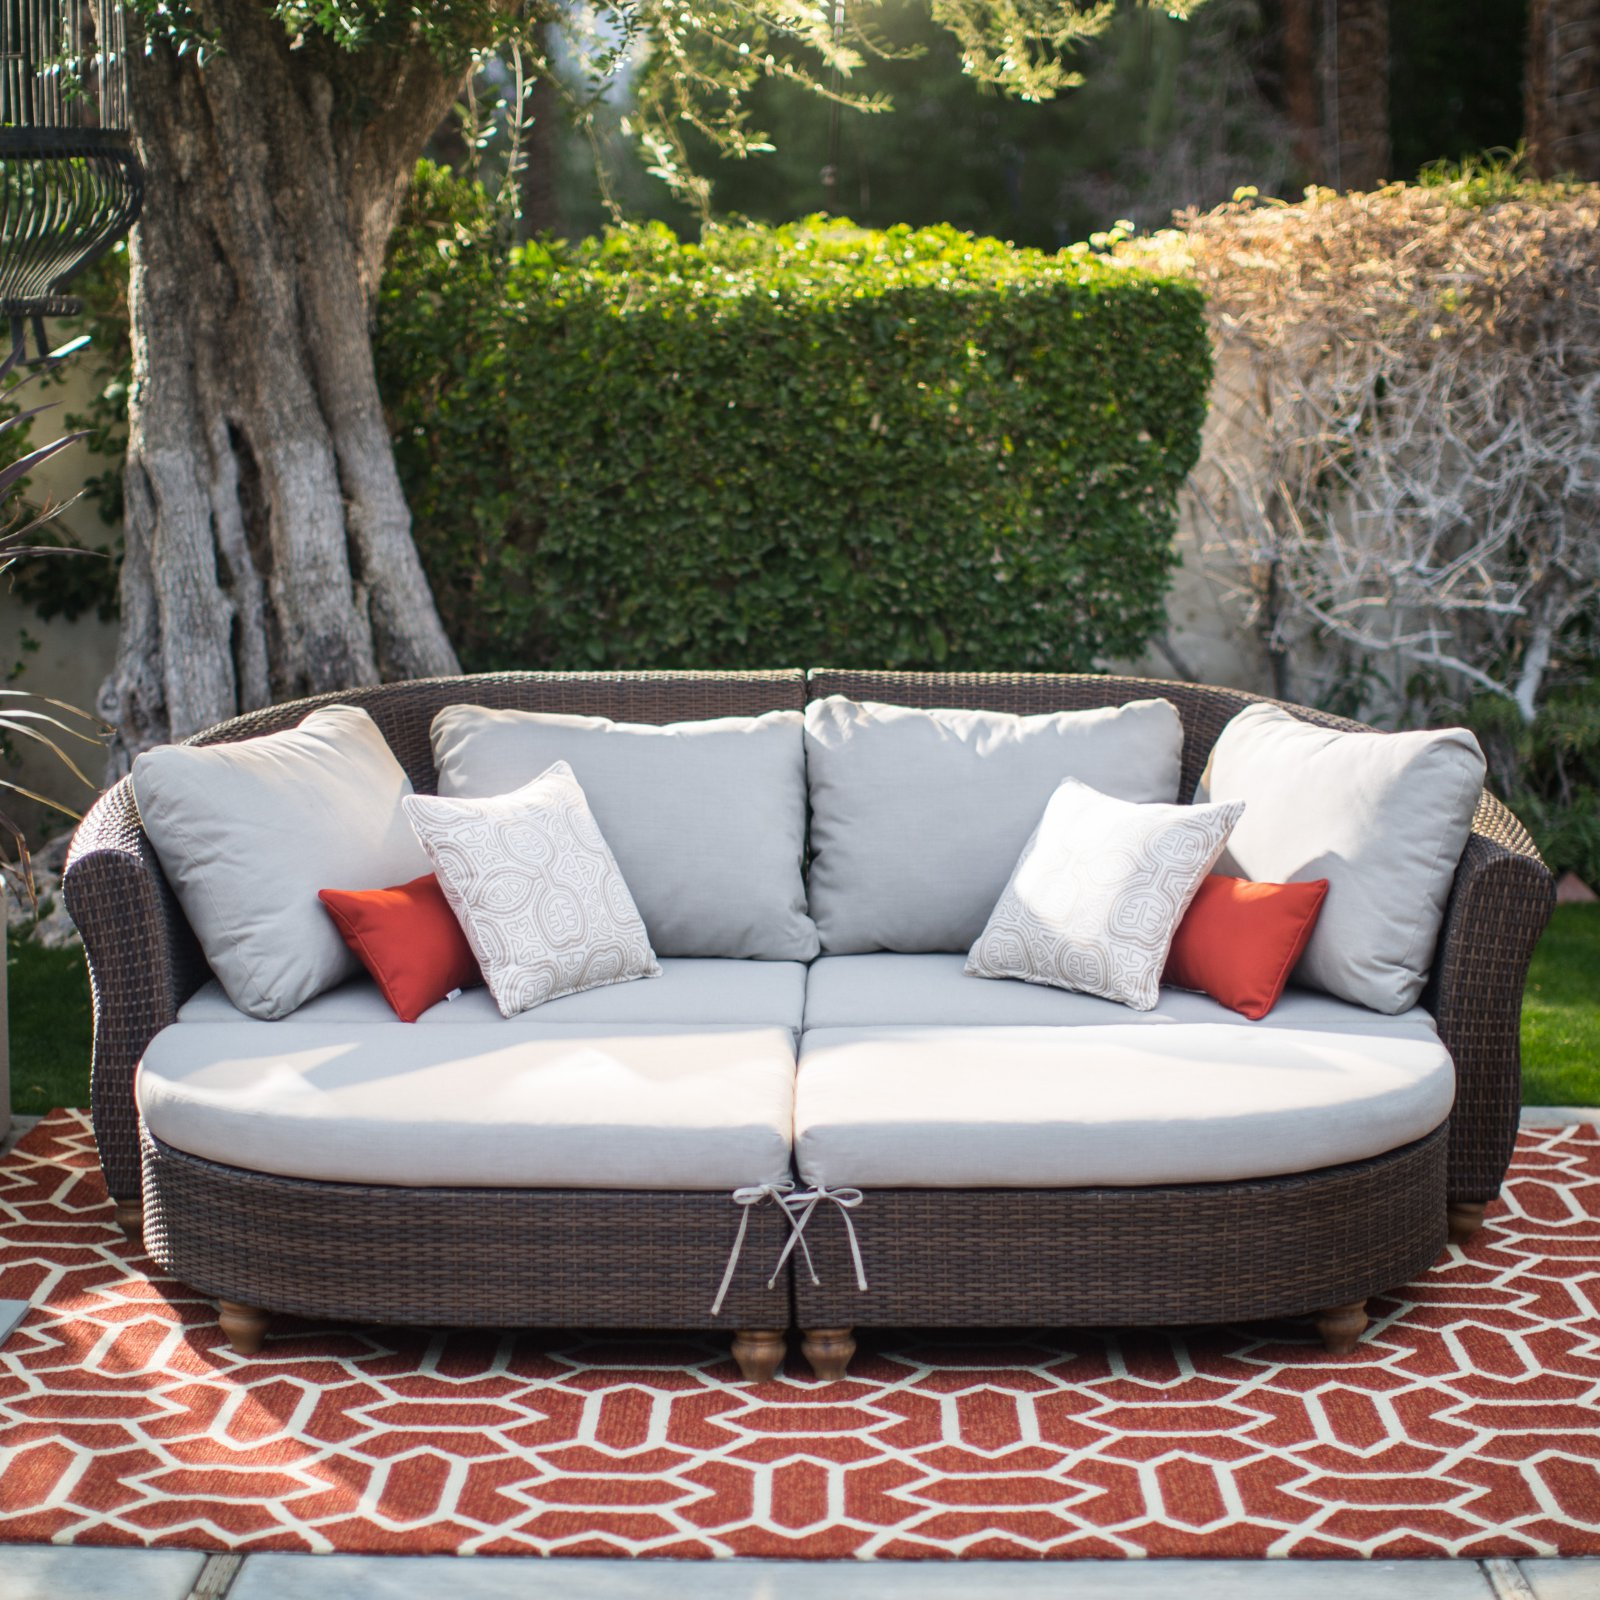 Belham Living Polanco Curved Back All Weather Wicker Sofa Daybed Sectional